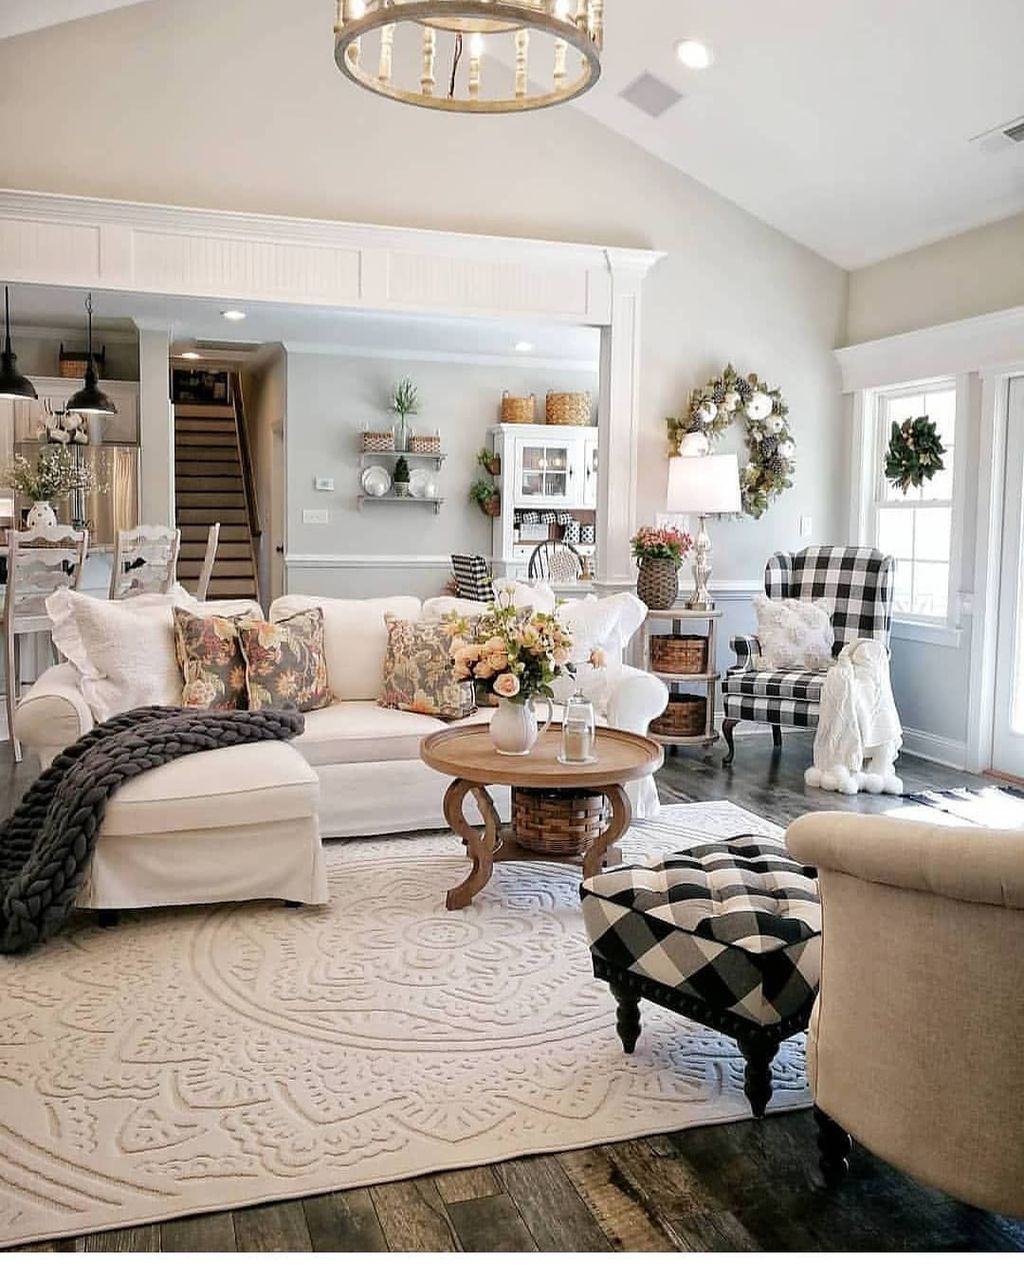 20 lovely living room design ideas with french country on modern farmhouse living room design and decor inspirations country farmhouse furniture id=17012